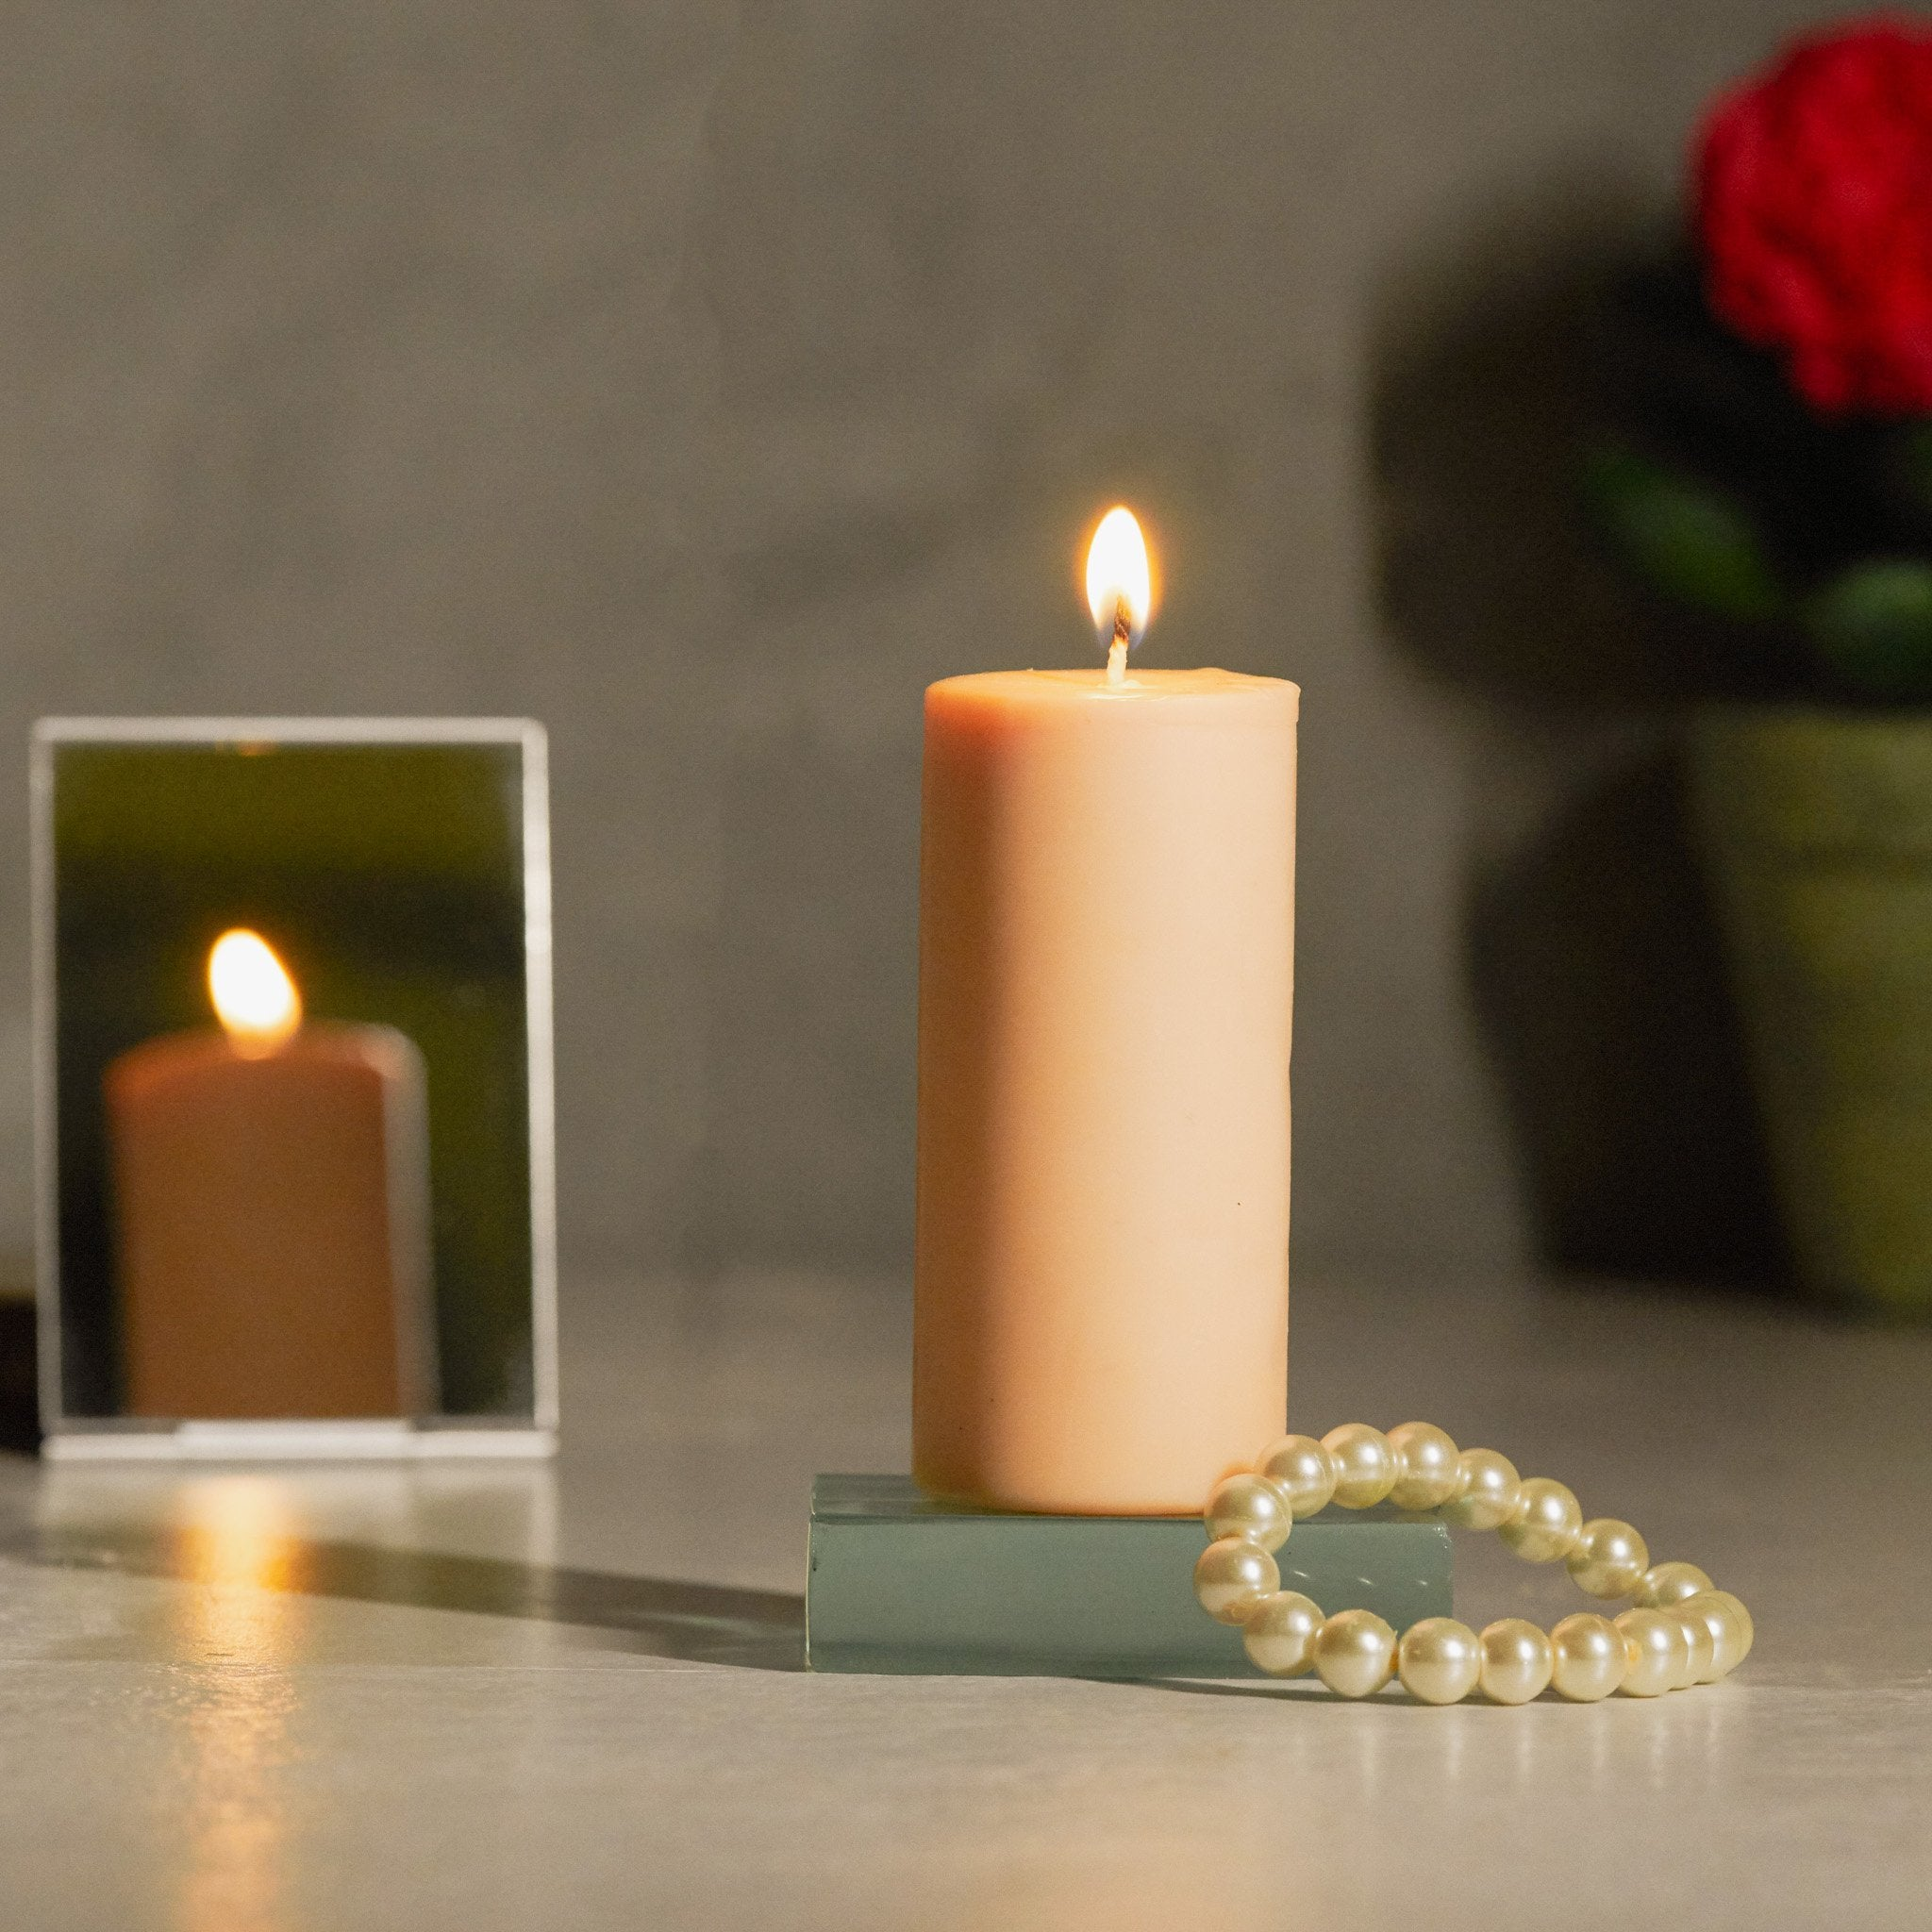 Infinity Gift Set of 6 Pillar Candles - Jasmine Scented - Rad Living